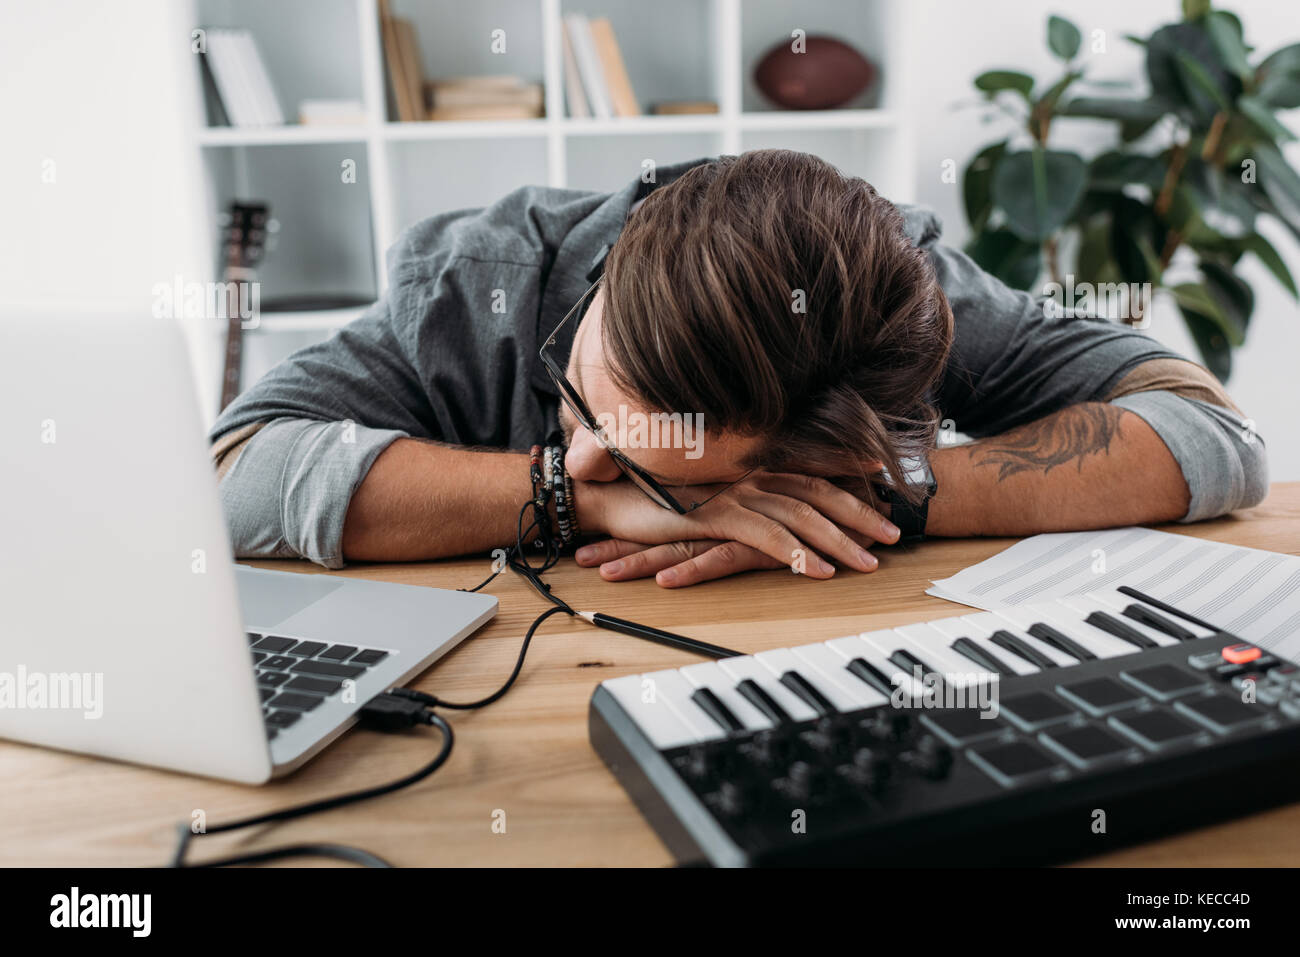 overworked musician sleeping at workplace - Stock Image